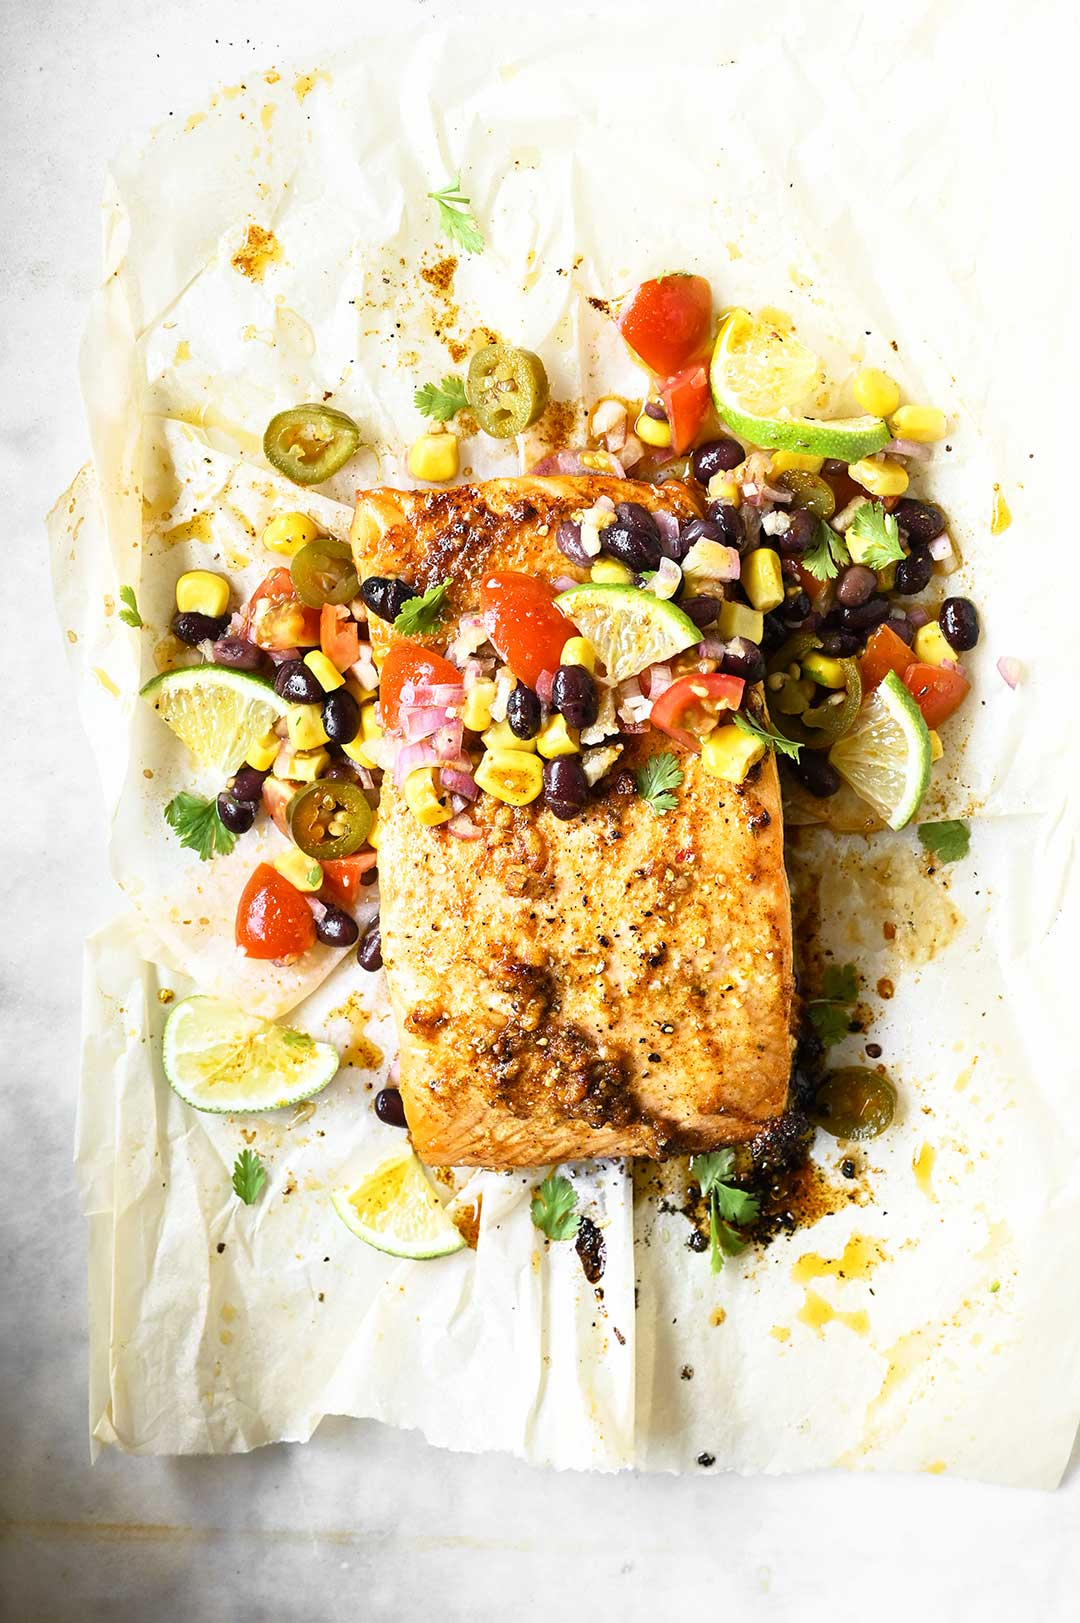 serving dumplings | Roasted salmon with black bean salsa